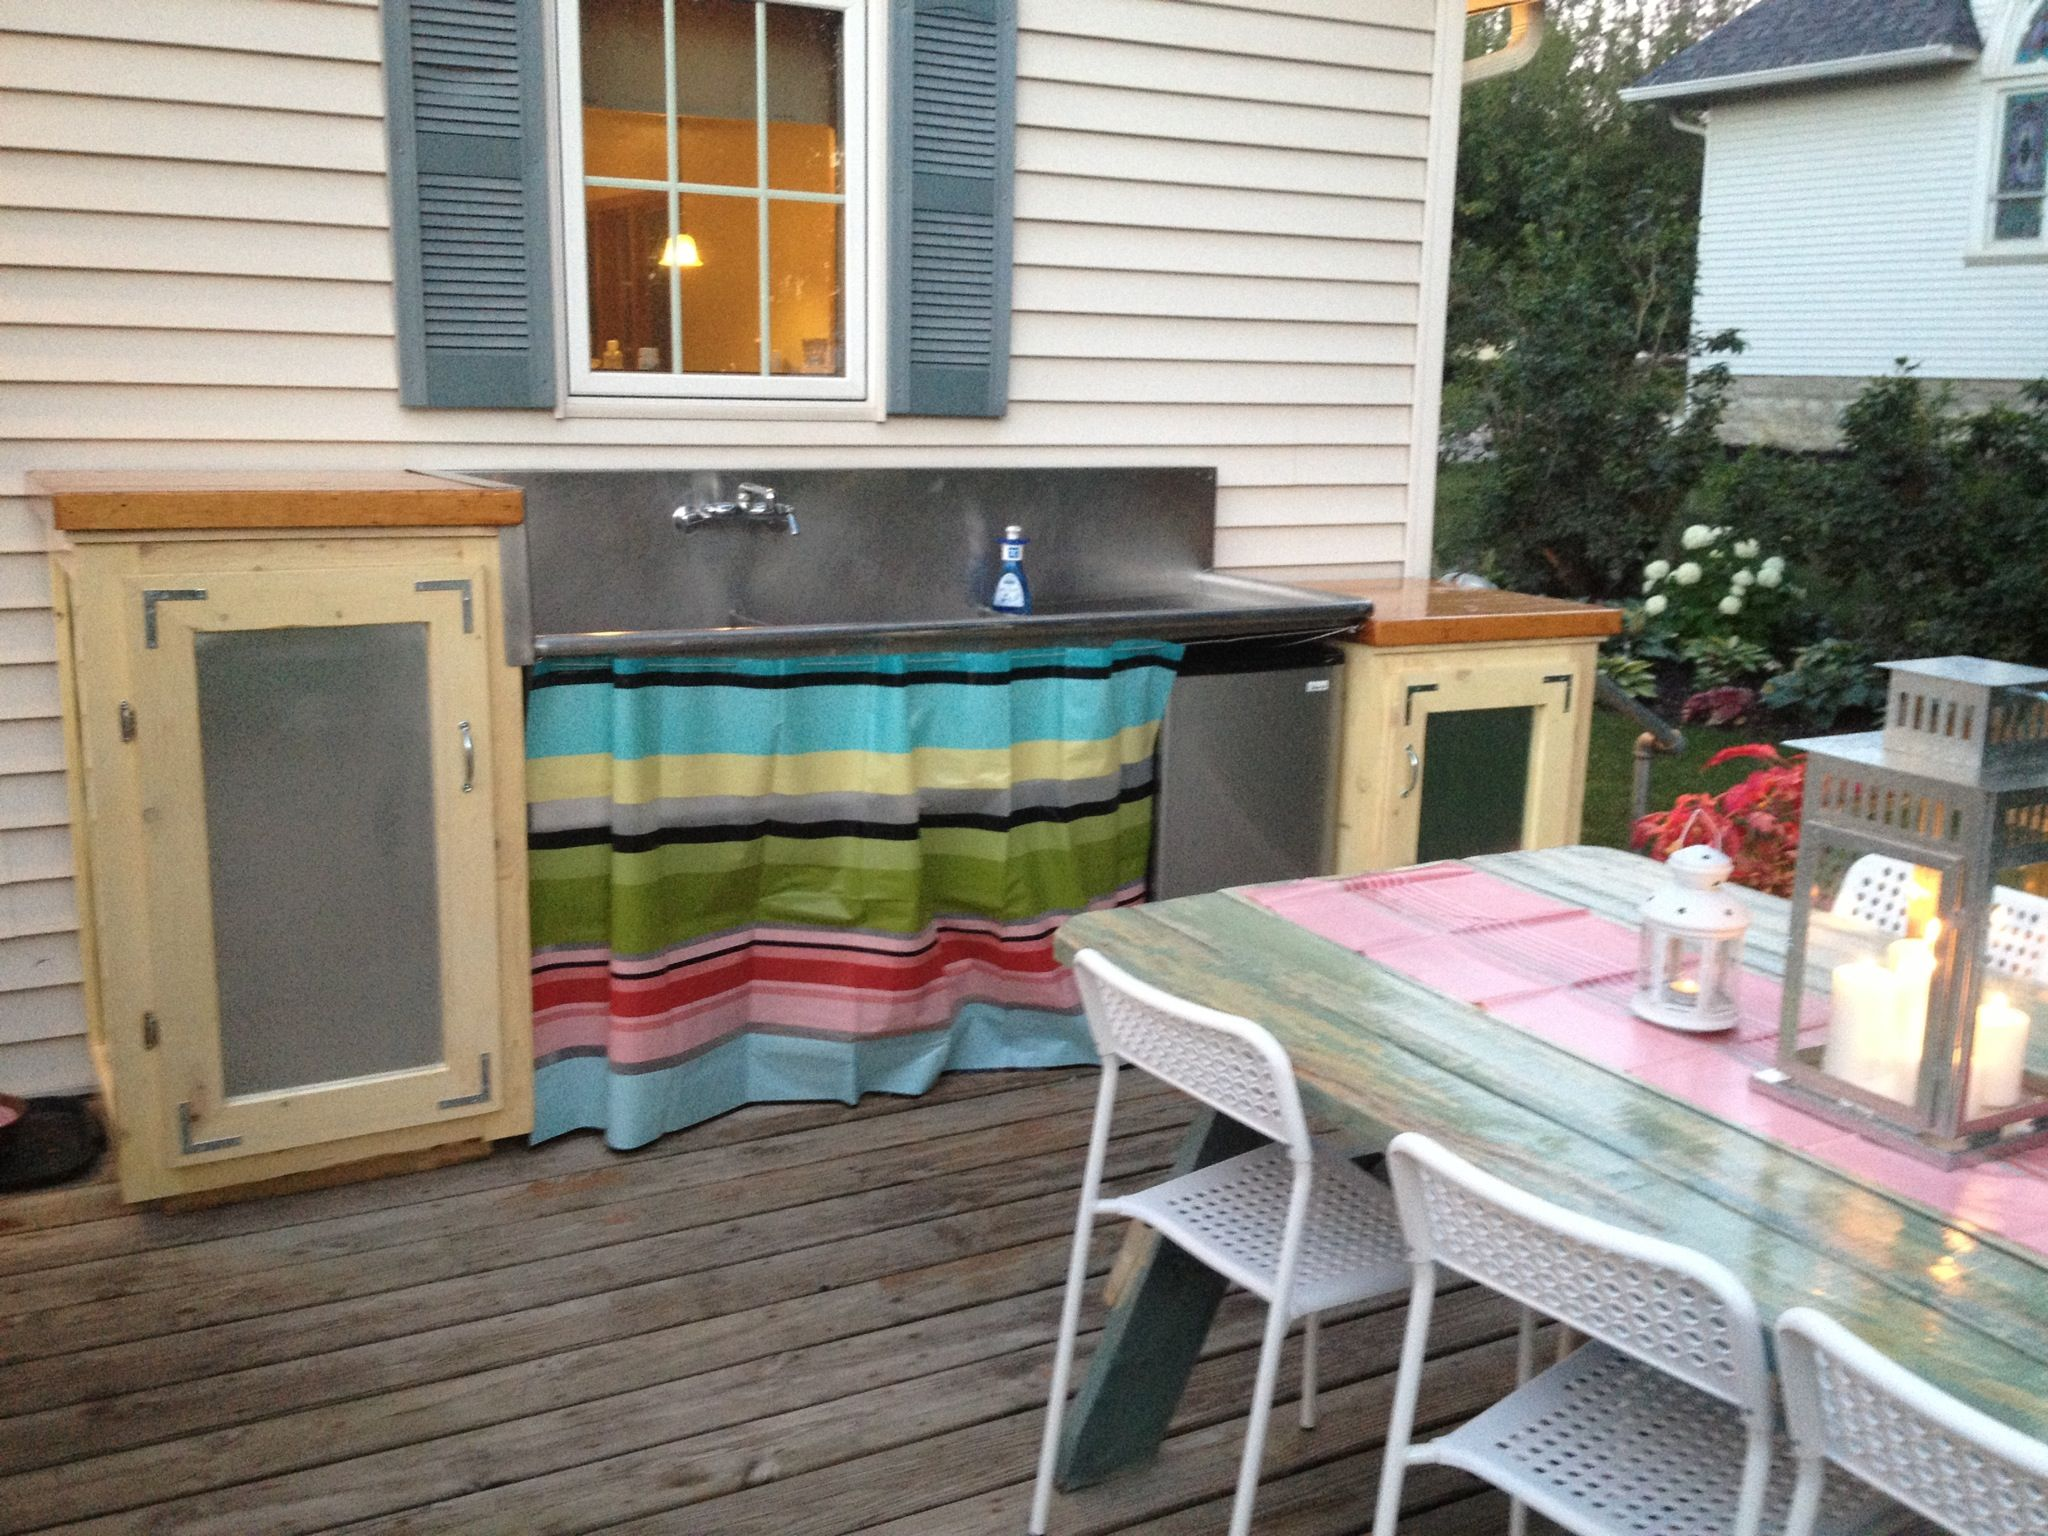 Outdoor Kitchen Made From A Salvaged Commercial Sink Sink Plumbed Directly To Indoor Kitchen Plumbing Wit Glass Backsplash Kitchen Diy Plumbing Butcher Block